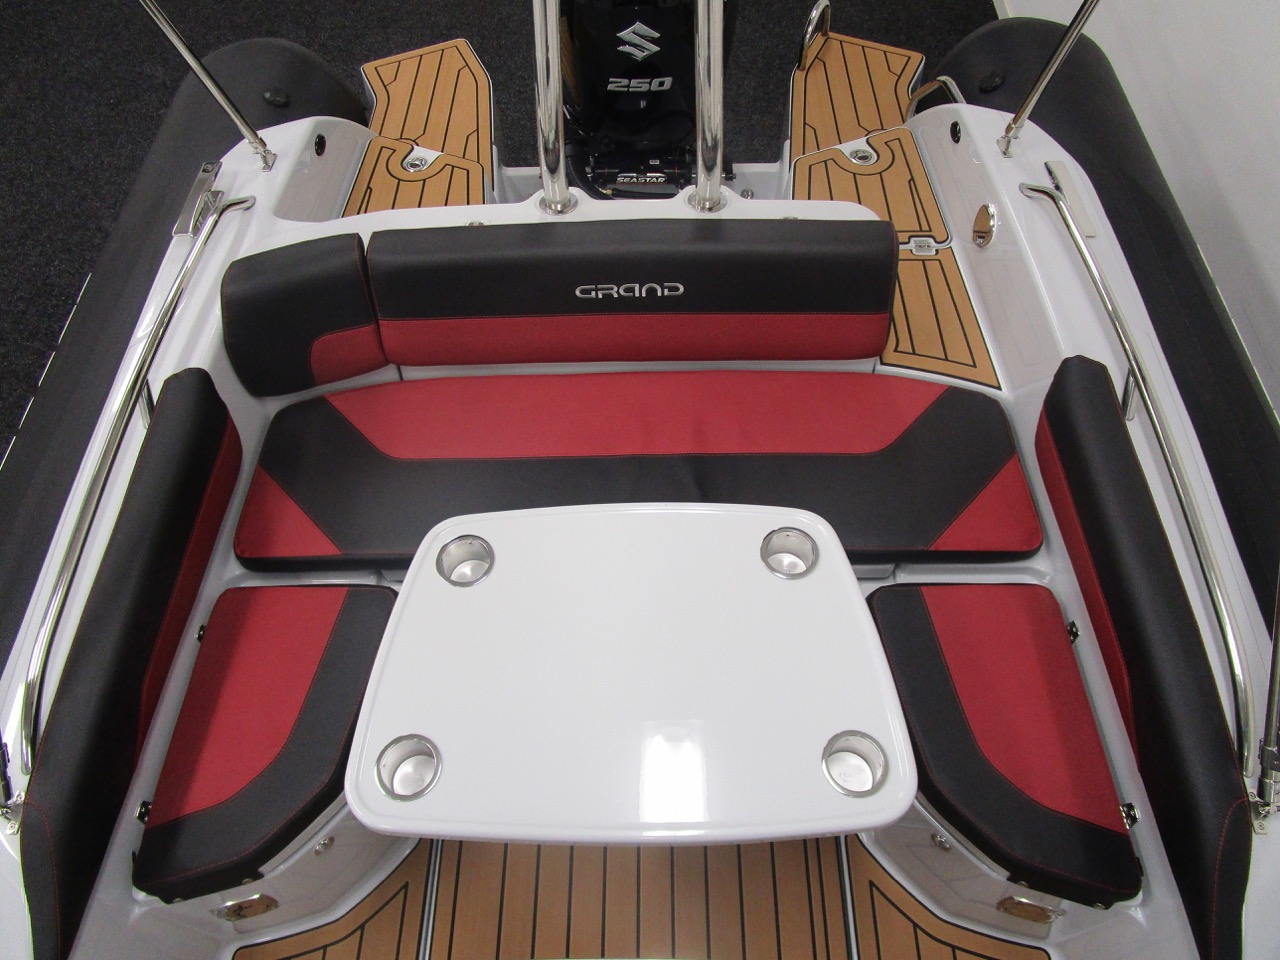 GRAND G750 RIB cockpit table